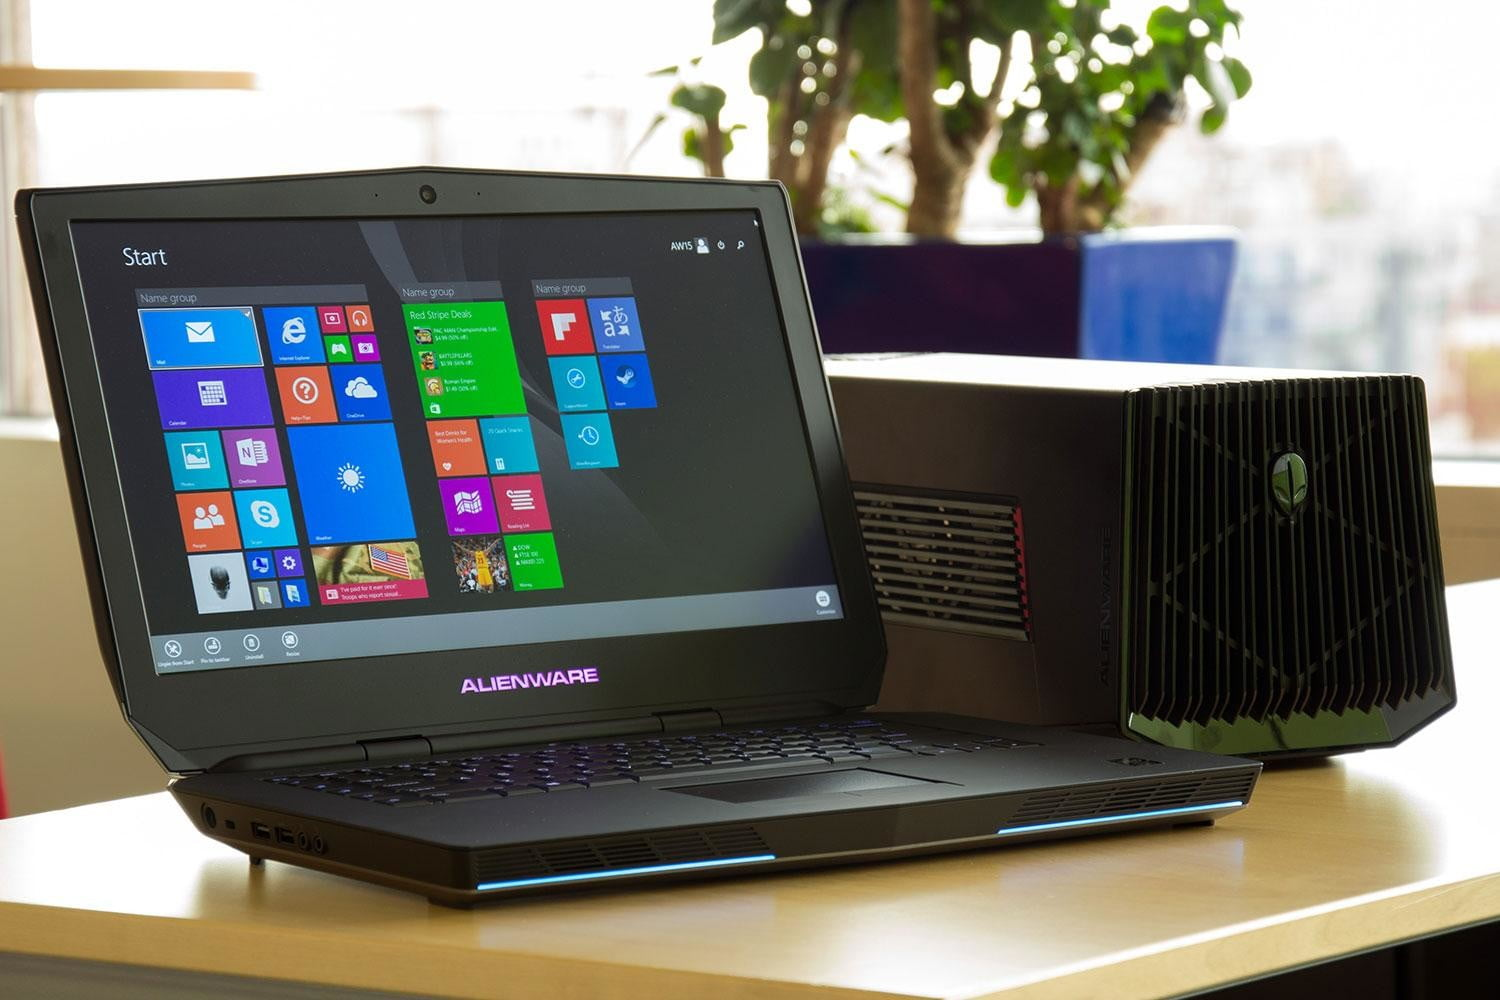 Alienware 15 Review | Gaming Laptop with Amplifier | Digital Trends